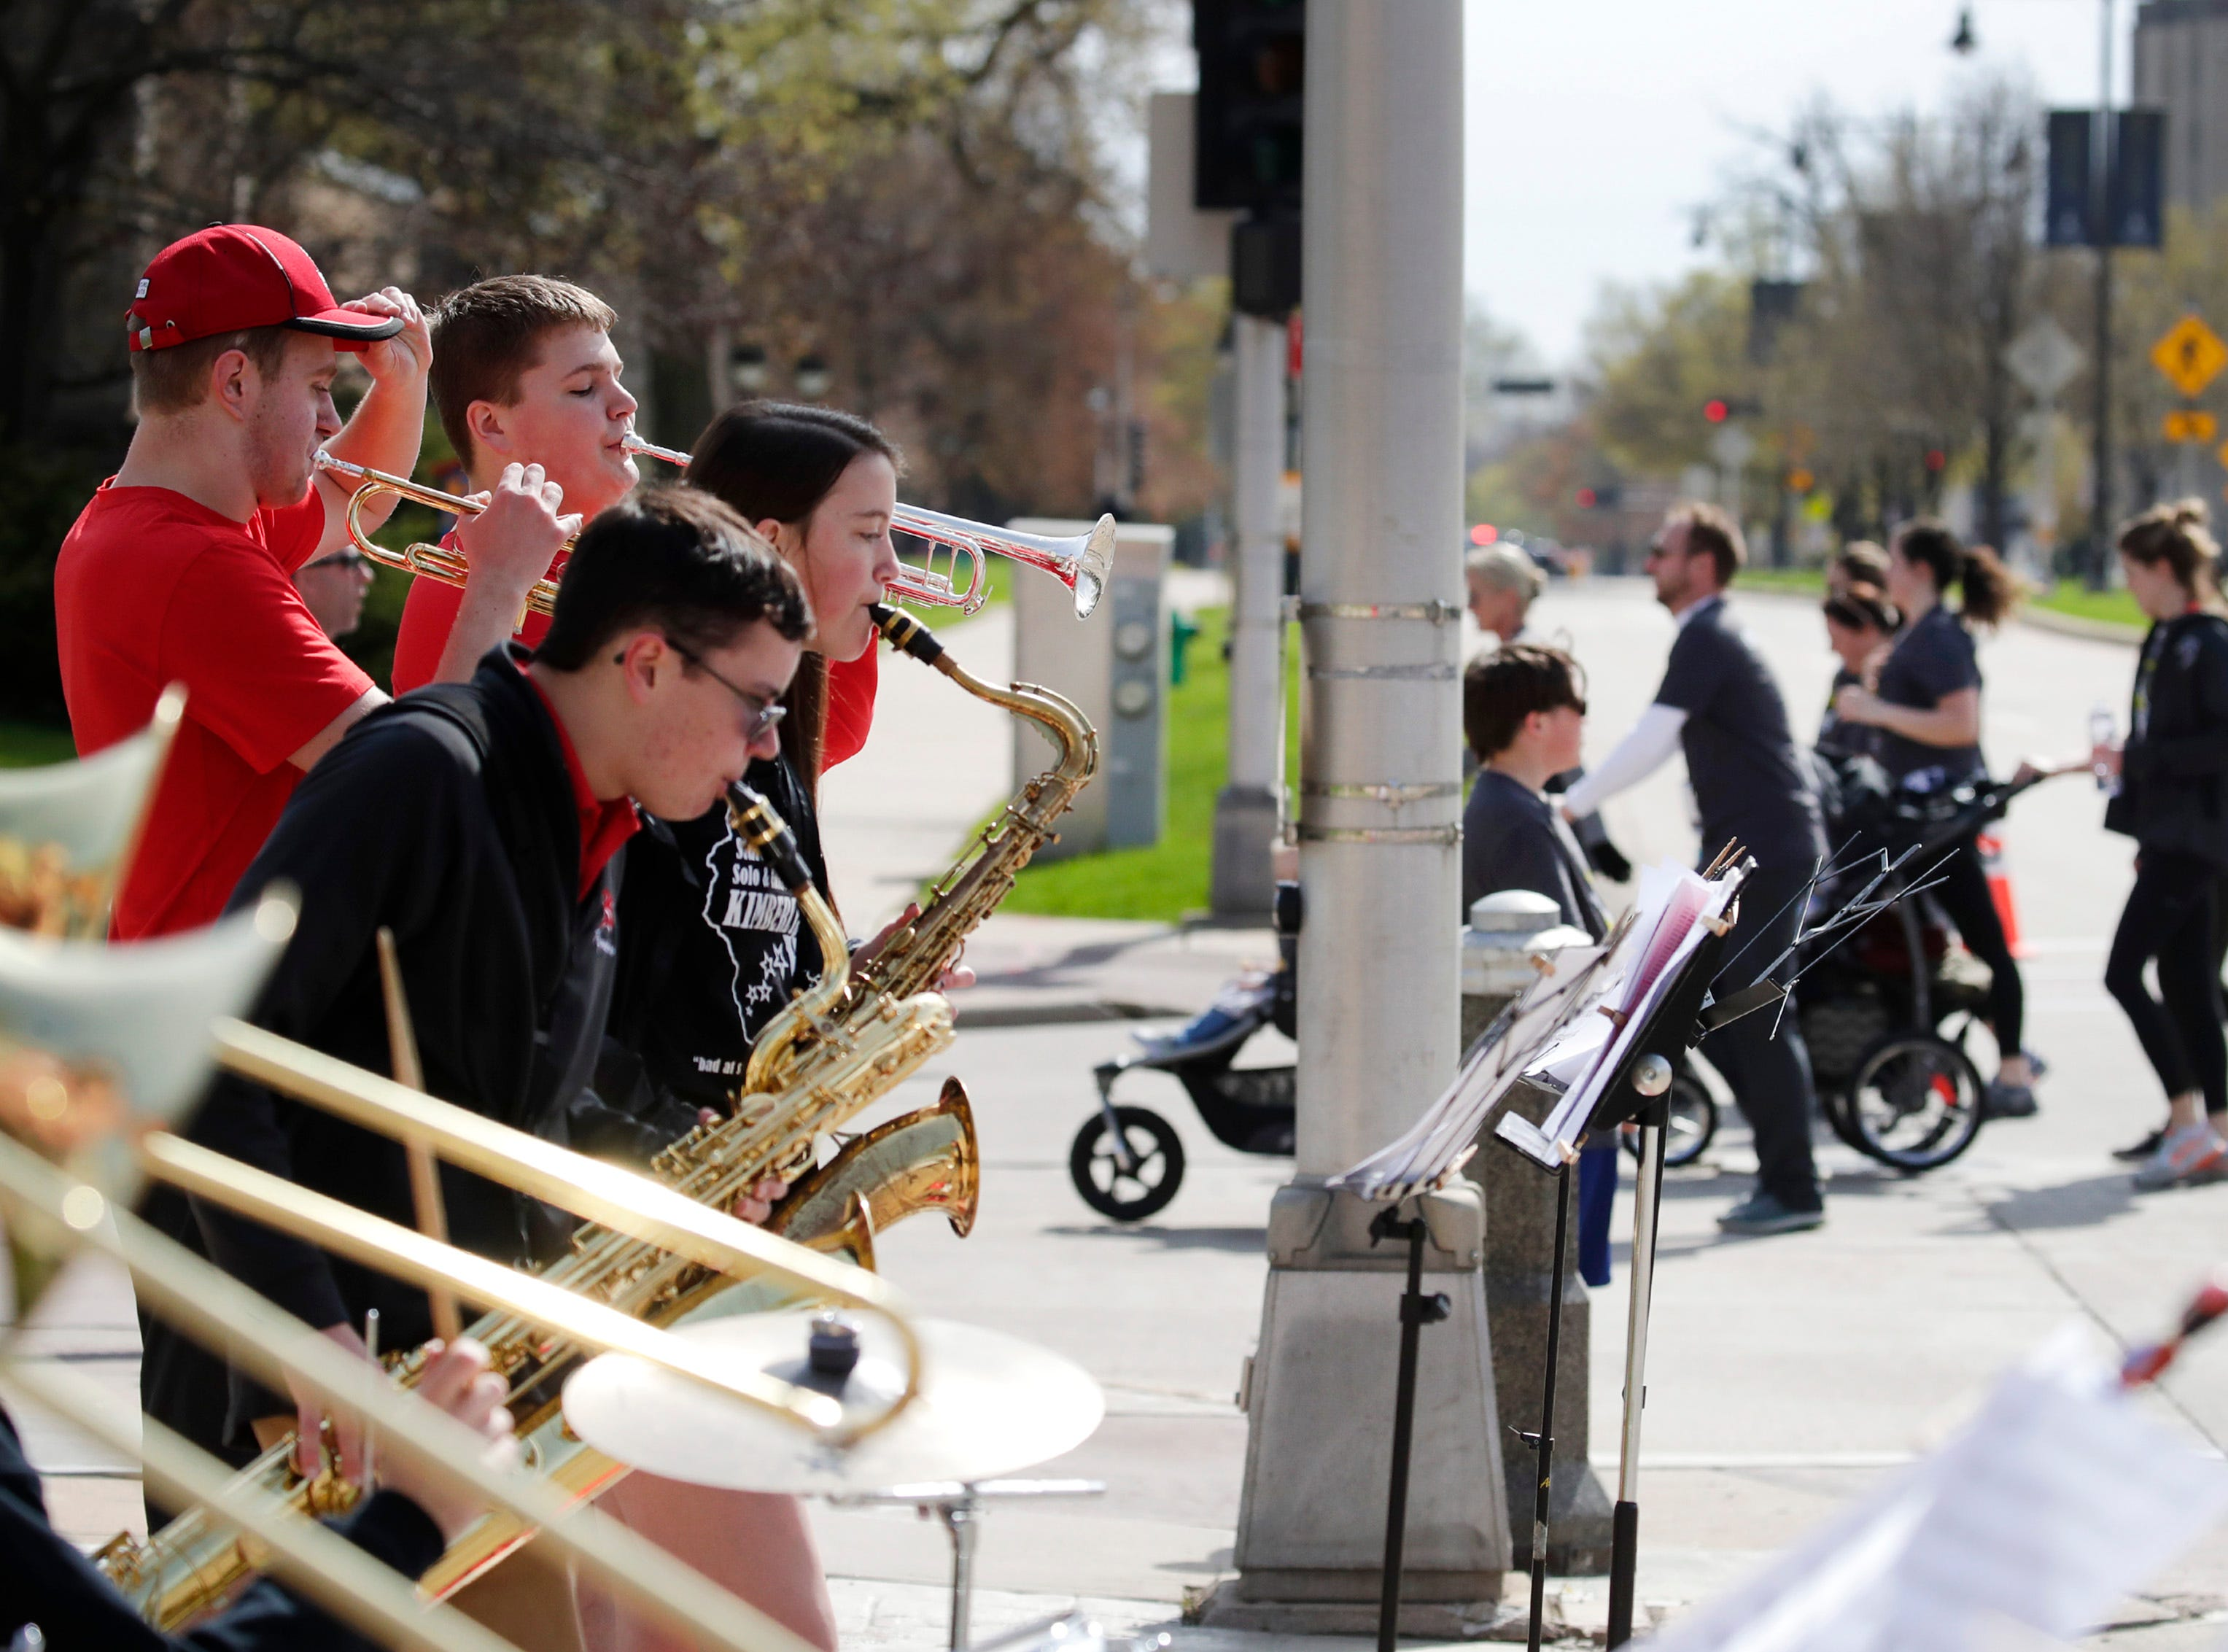 Members of the Kimberly band play for runners and walkers as they near the finish line during the Sole Burner 5K Walk-Run Saturday, May 11, 2019, in Appleton, Wis. Danny Damiani/USA TODAY NETWORK-Wisconsin